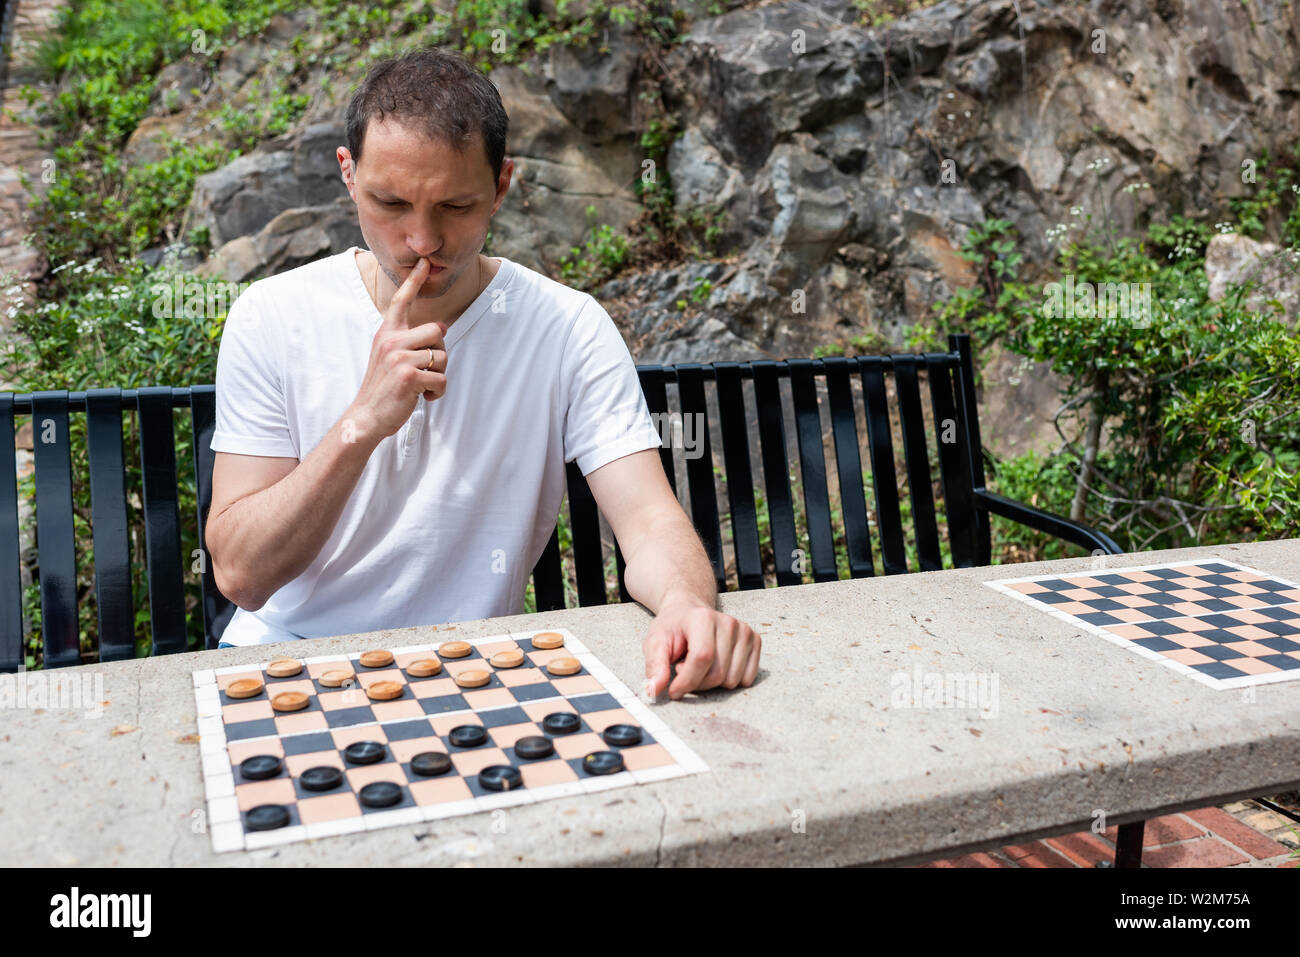 Checkers table in park in Hot Springs, Arkansas with man thinking playing during summer day sitting on bench Stock Photo